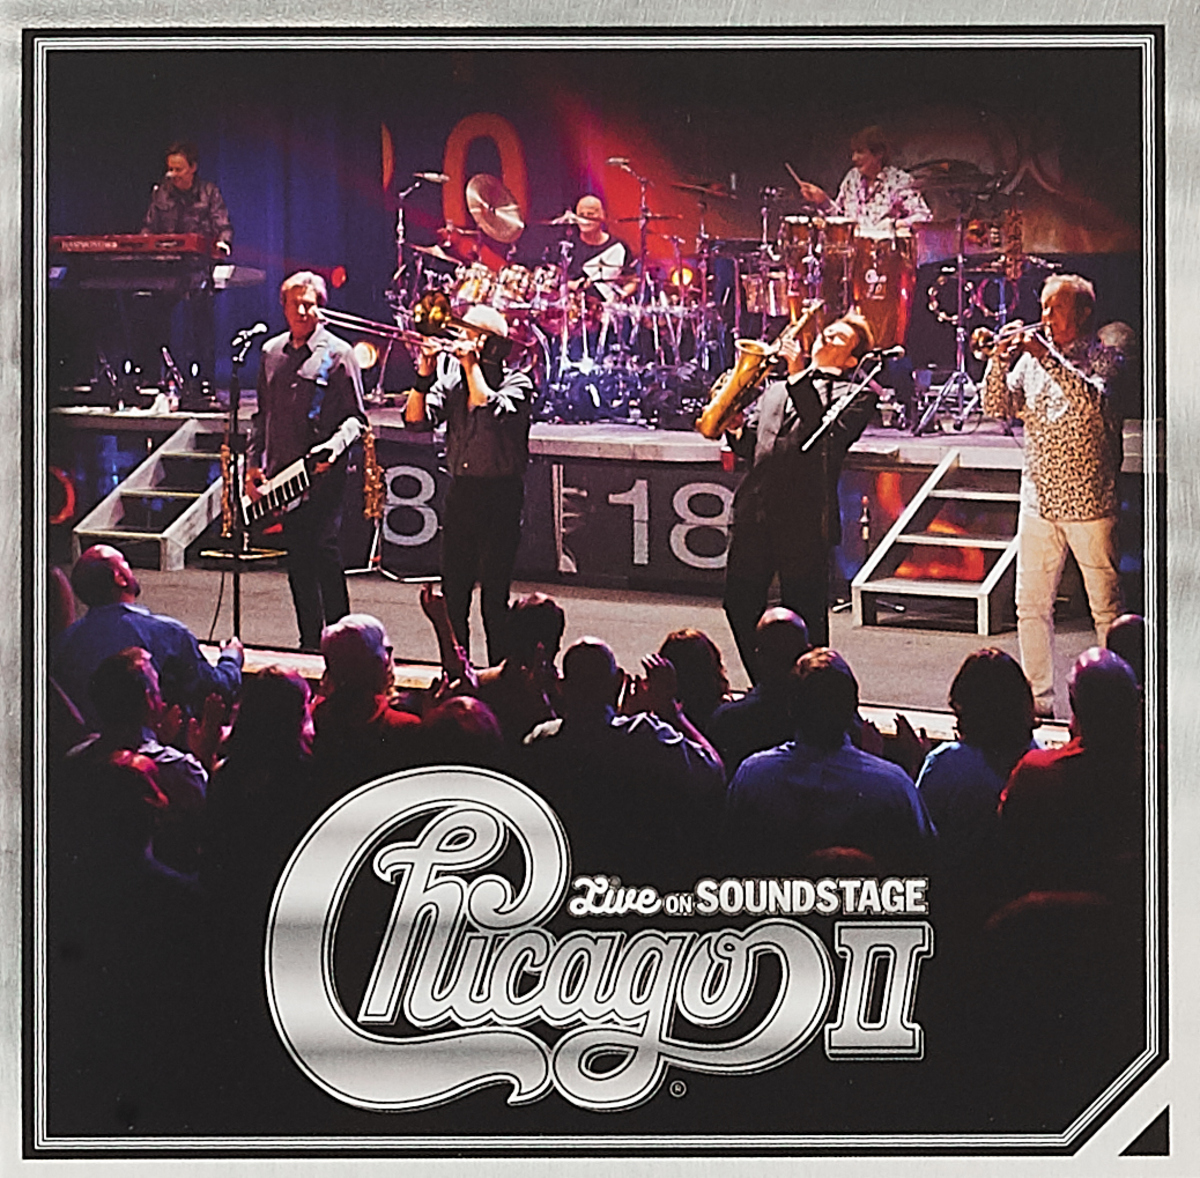 Chicago Chicago. Chicago II - Live On Soundstage chicago chicago 16